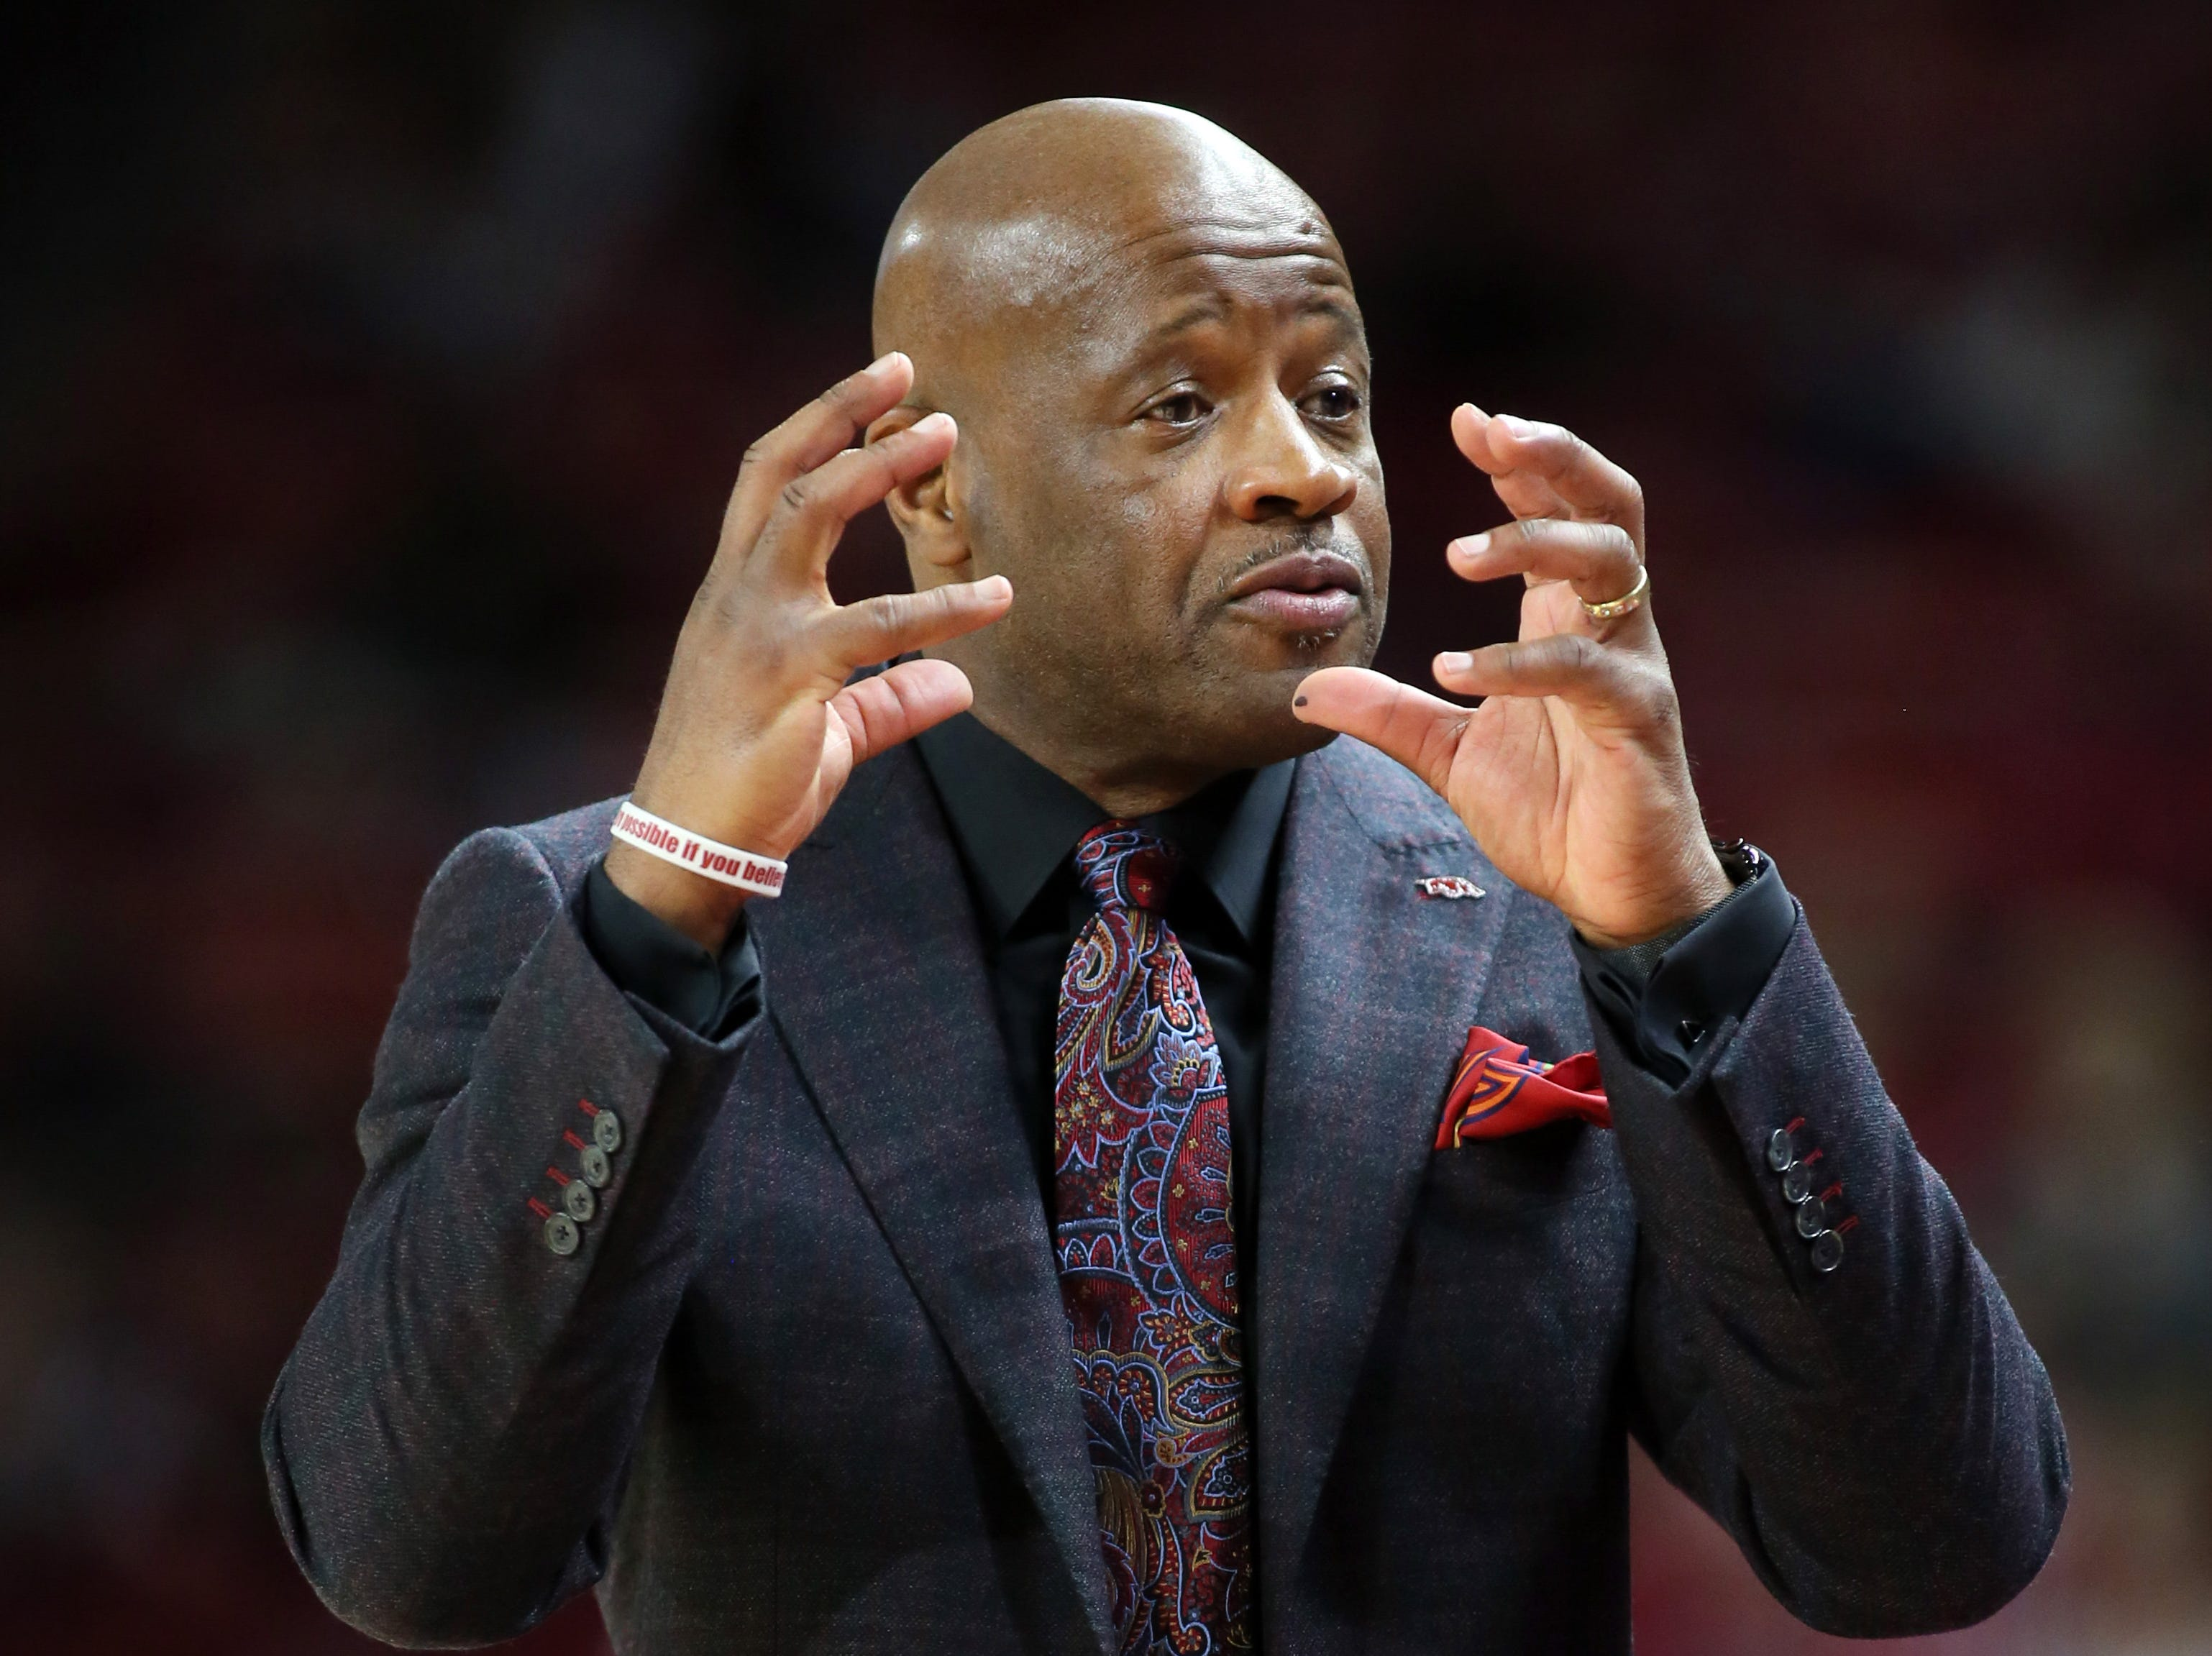 Mar 9, 2019; Fayetteville, AR, USA; Arkansas Razorbacks head coach Mike Anderson during the first half against the Alabama Crimson Tide at Bud Walton Arena. Mandatory Credit: Nelson Chenault-USA TODAY Sports